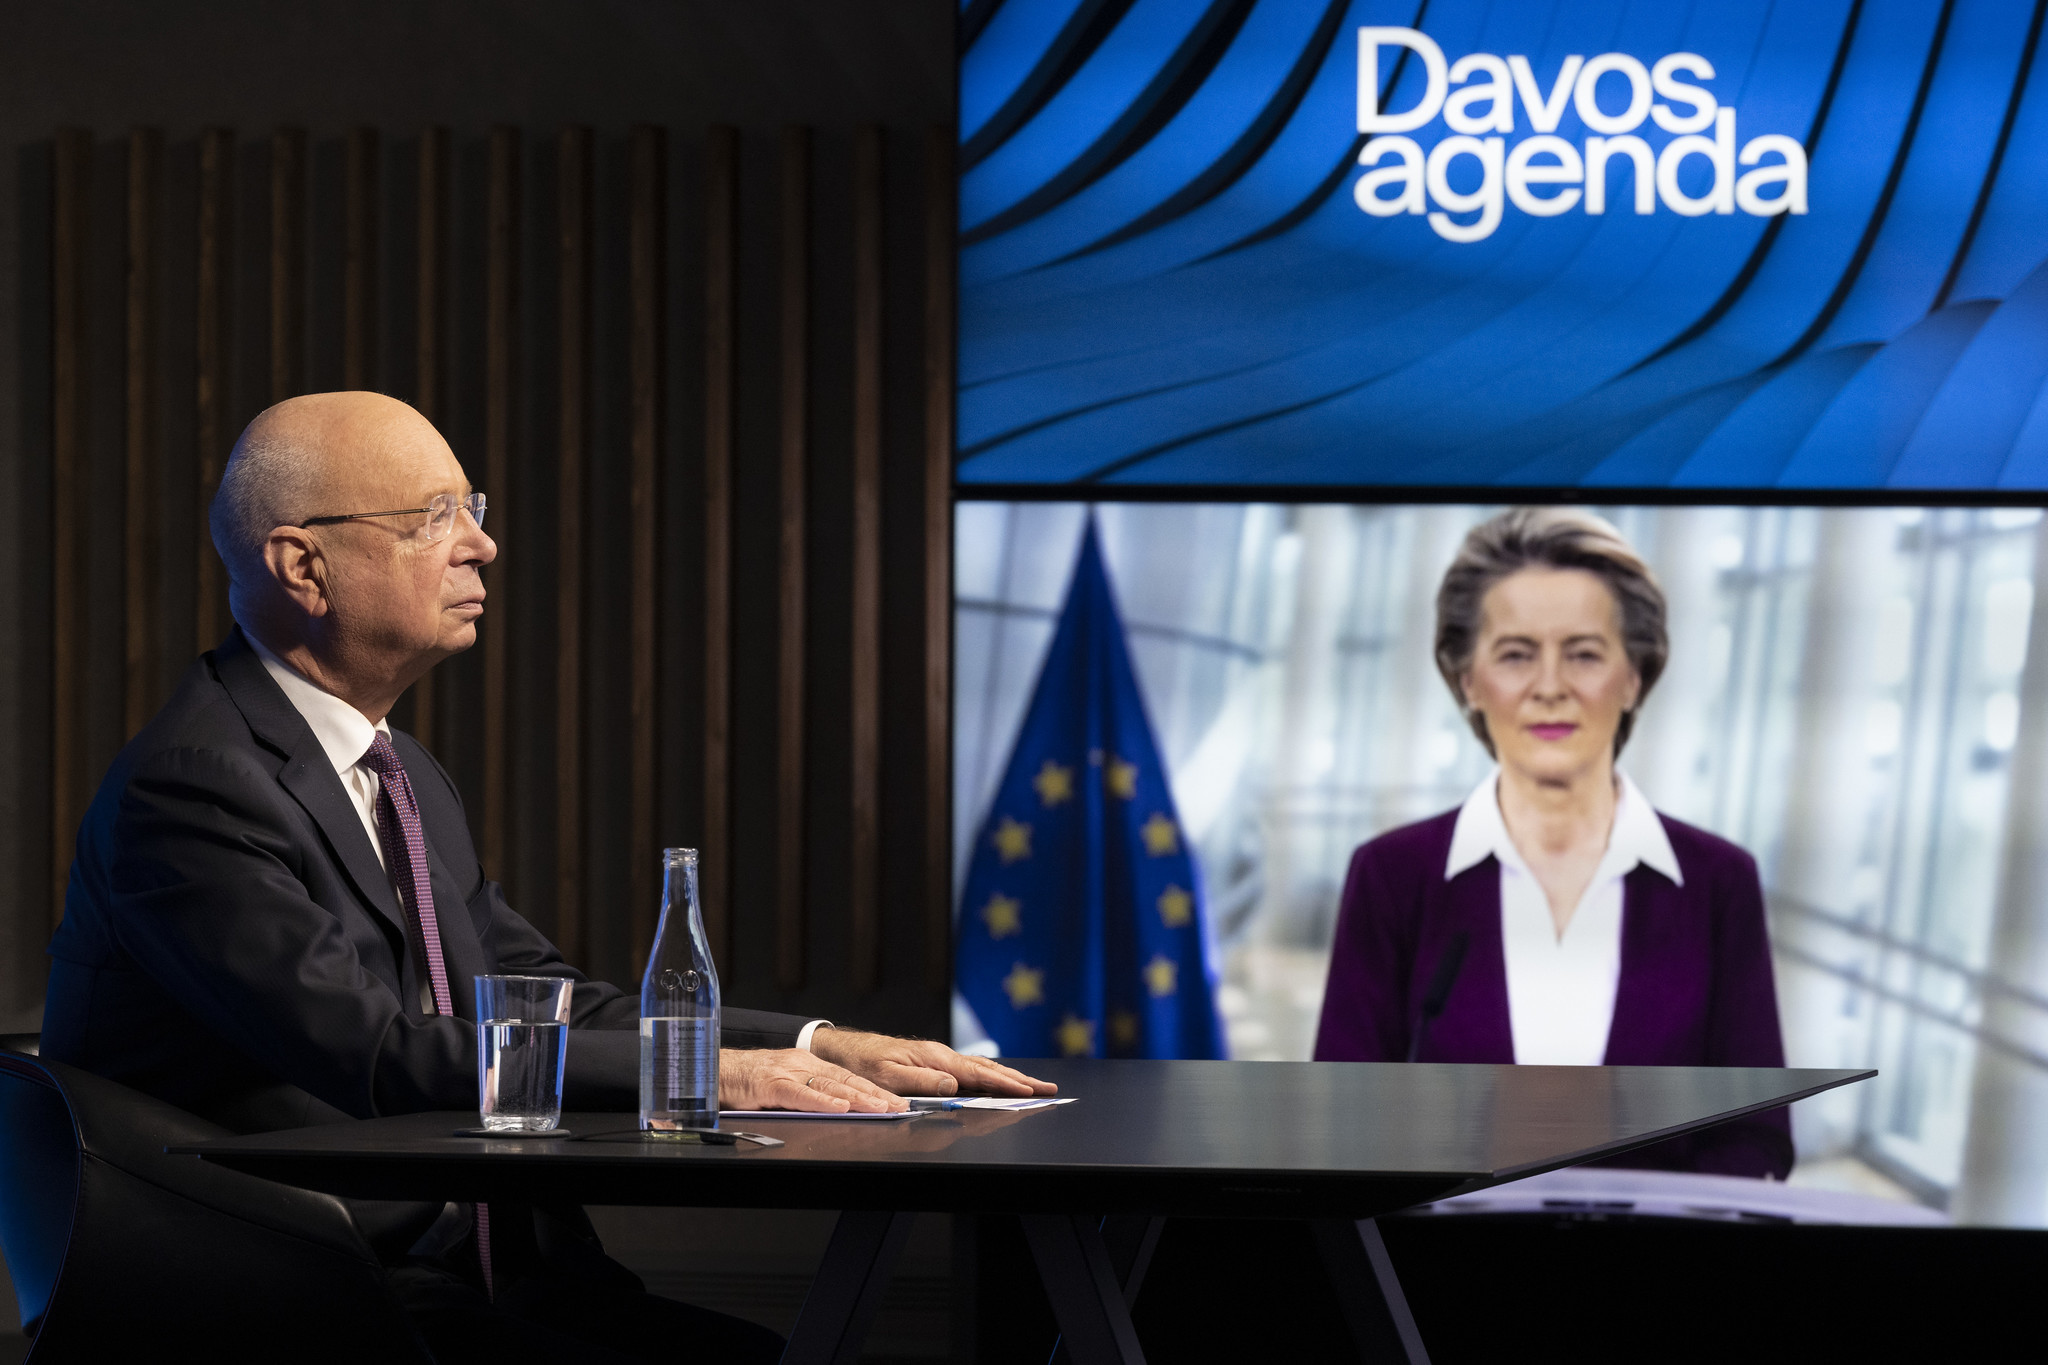 Professor Klaus Schwab World Economic Forum Davos Agenda Week European Commission Ursula von der Leye